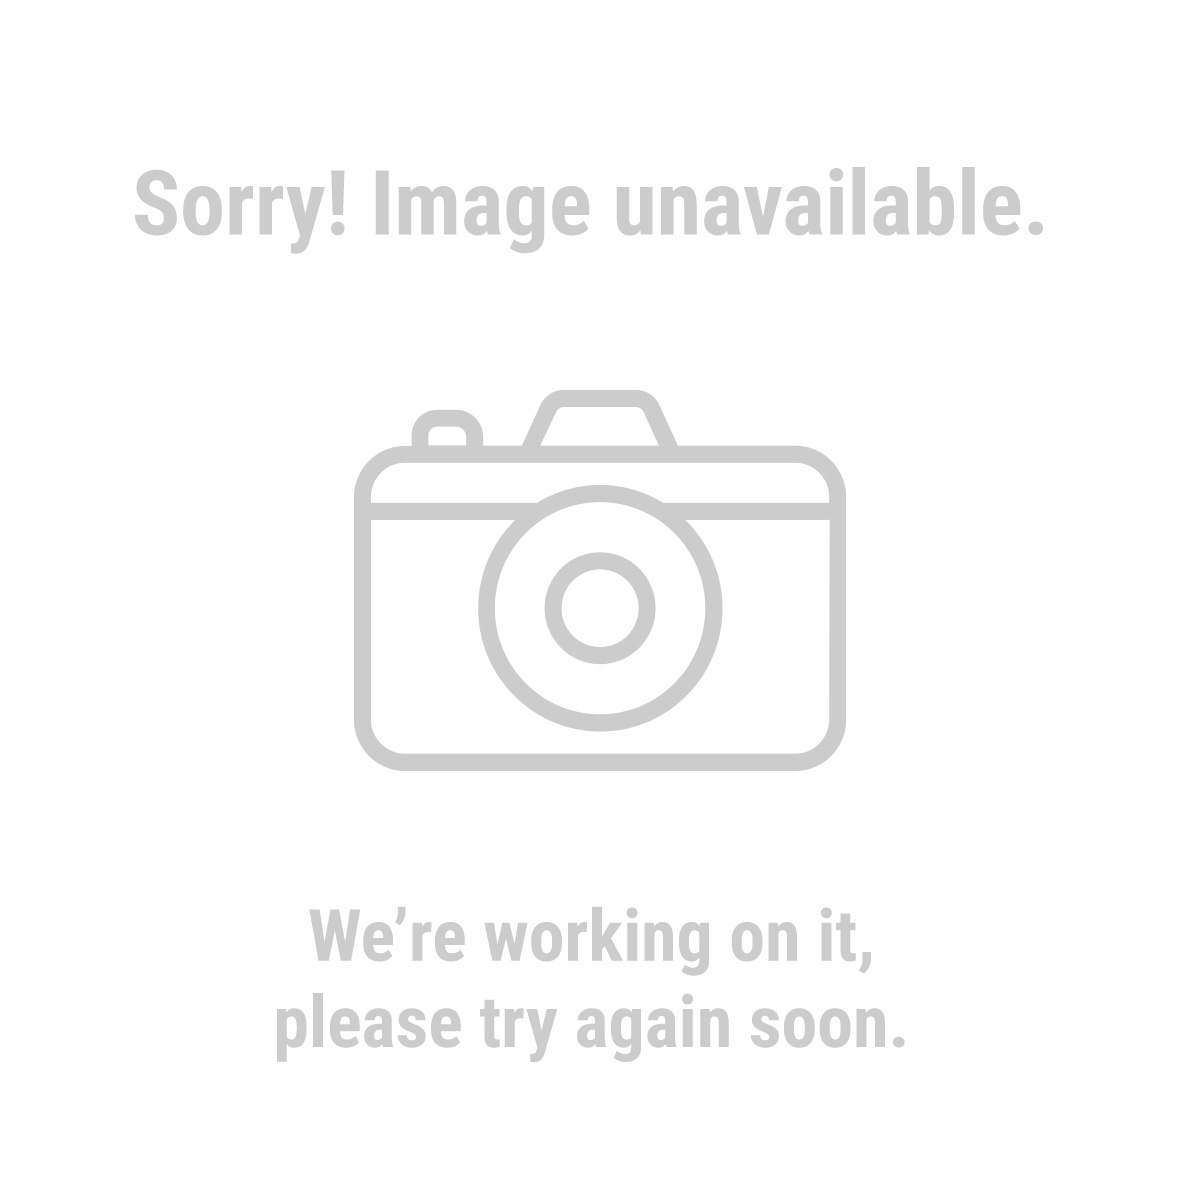 Chicago Electric 96710 25 Ft. 12 Gauge Triple Tap Extension Cord with Indicator Light